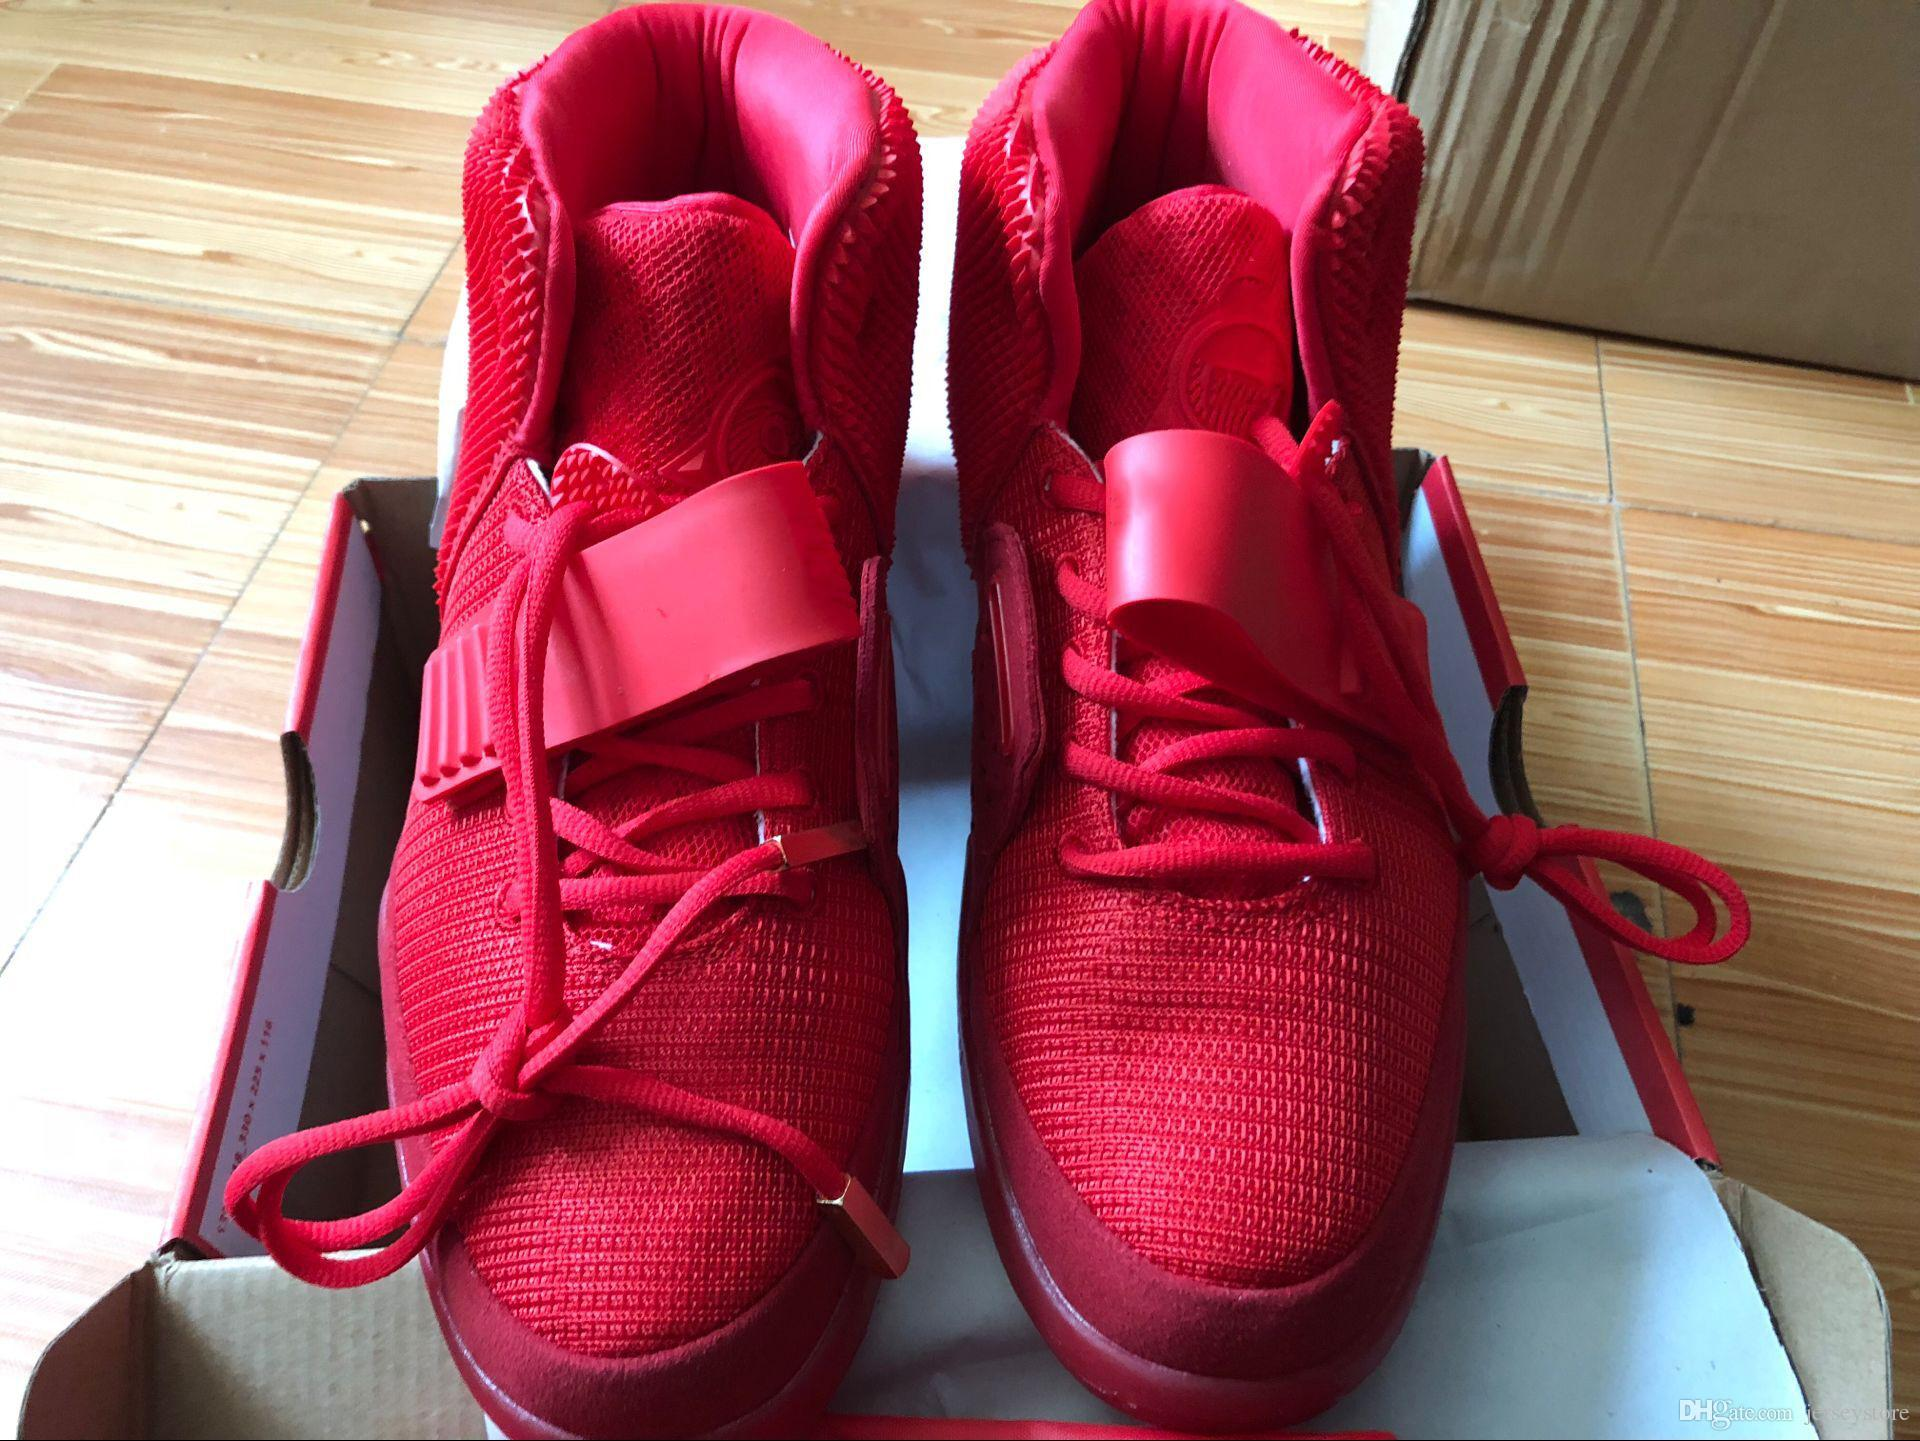 2016 Man and Women 2 Red October West Trendy shoes sneakers basketball shoes size eur 36-47 Sports Shoes